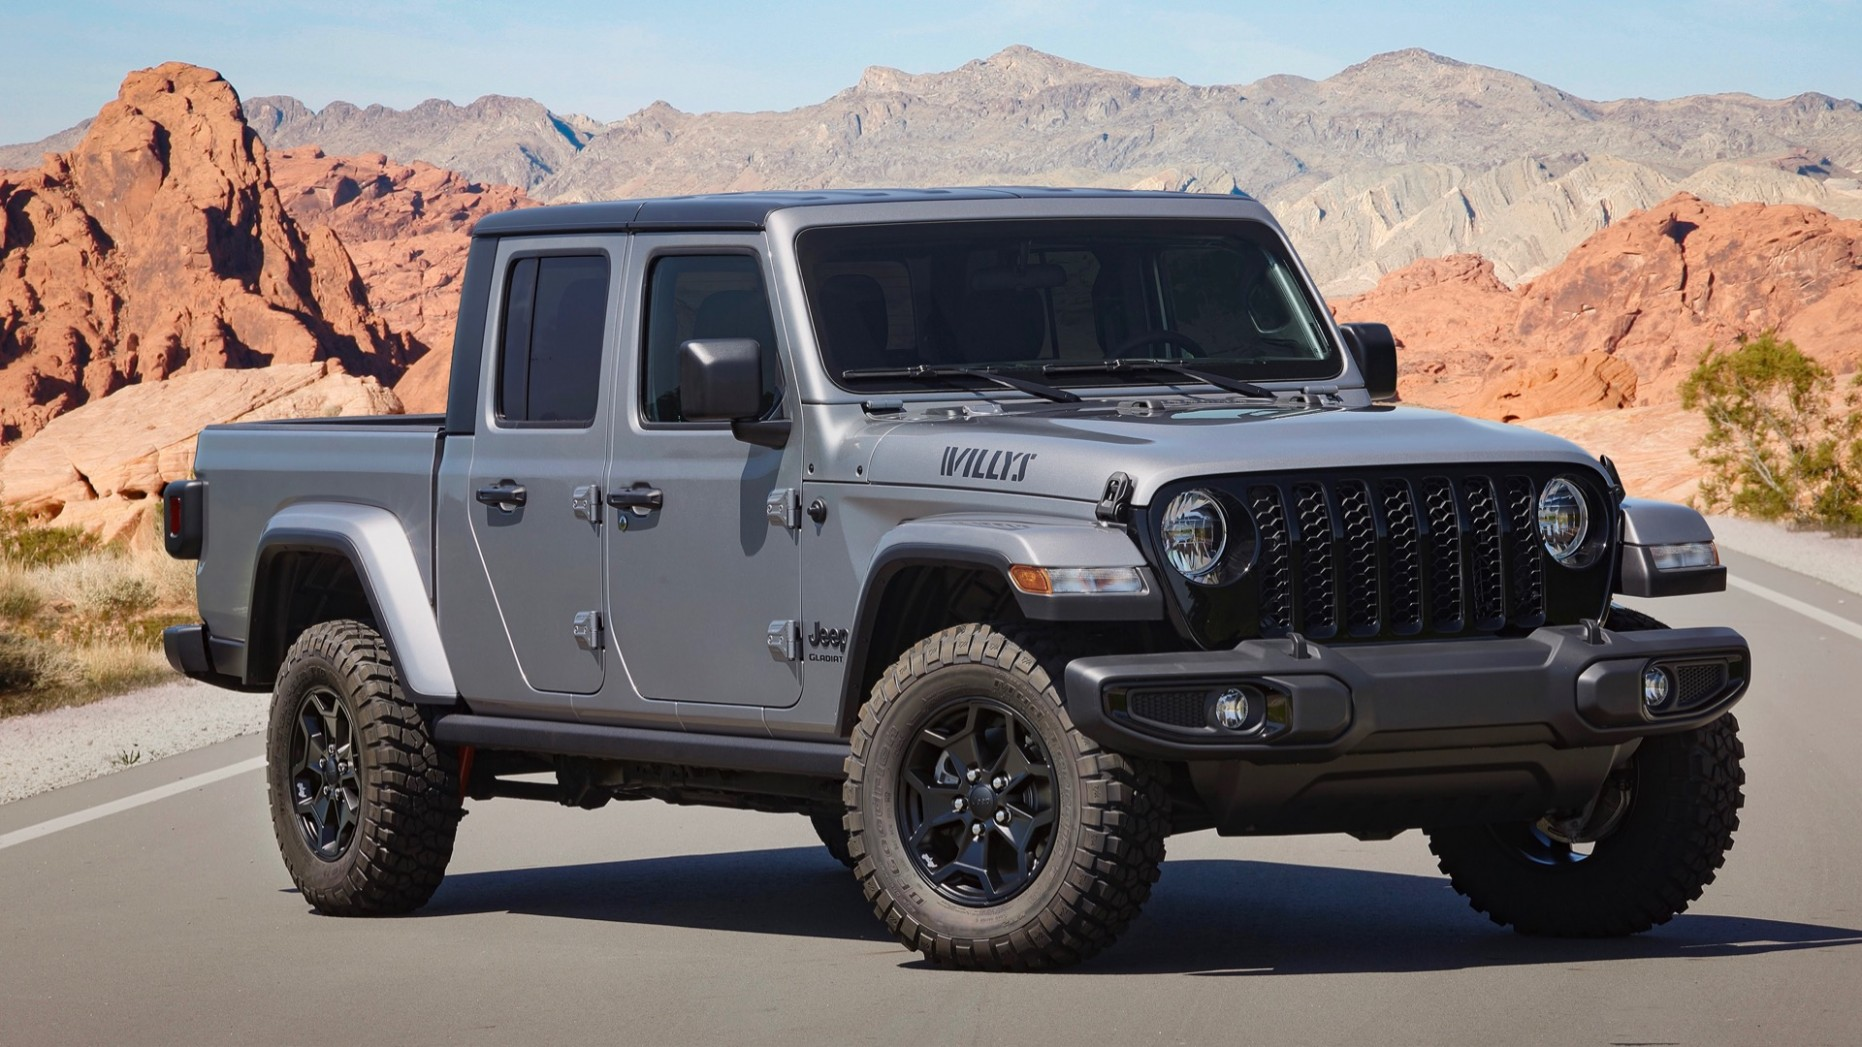 5 Jeep Gladiator Willys adds off-road hardware to lower trim levels